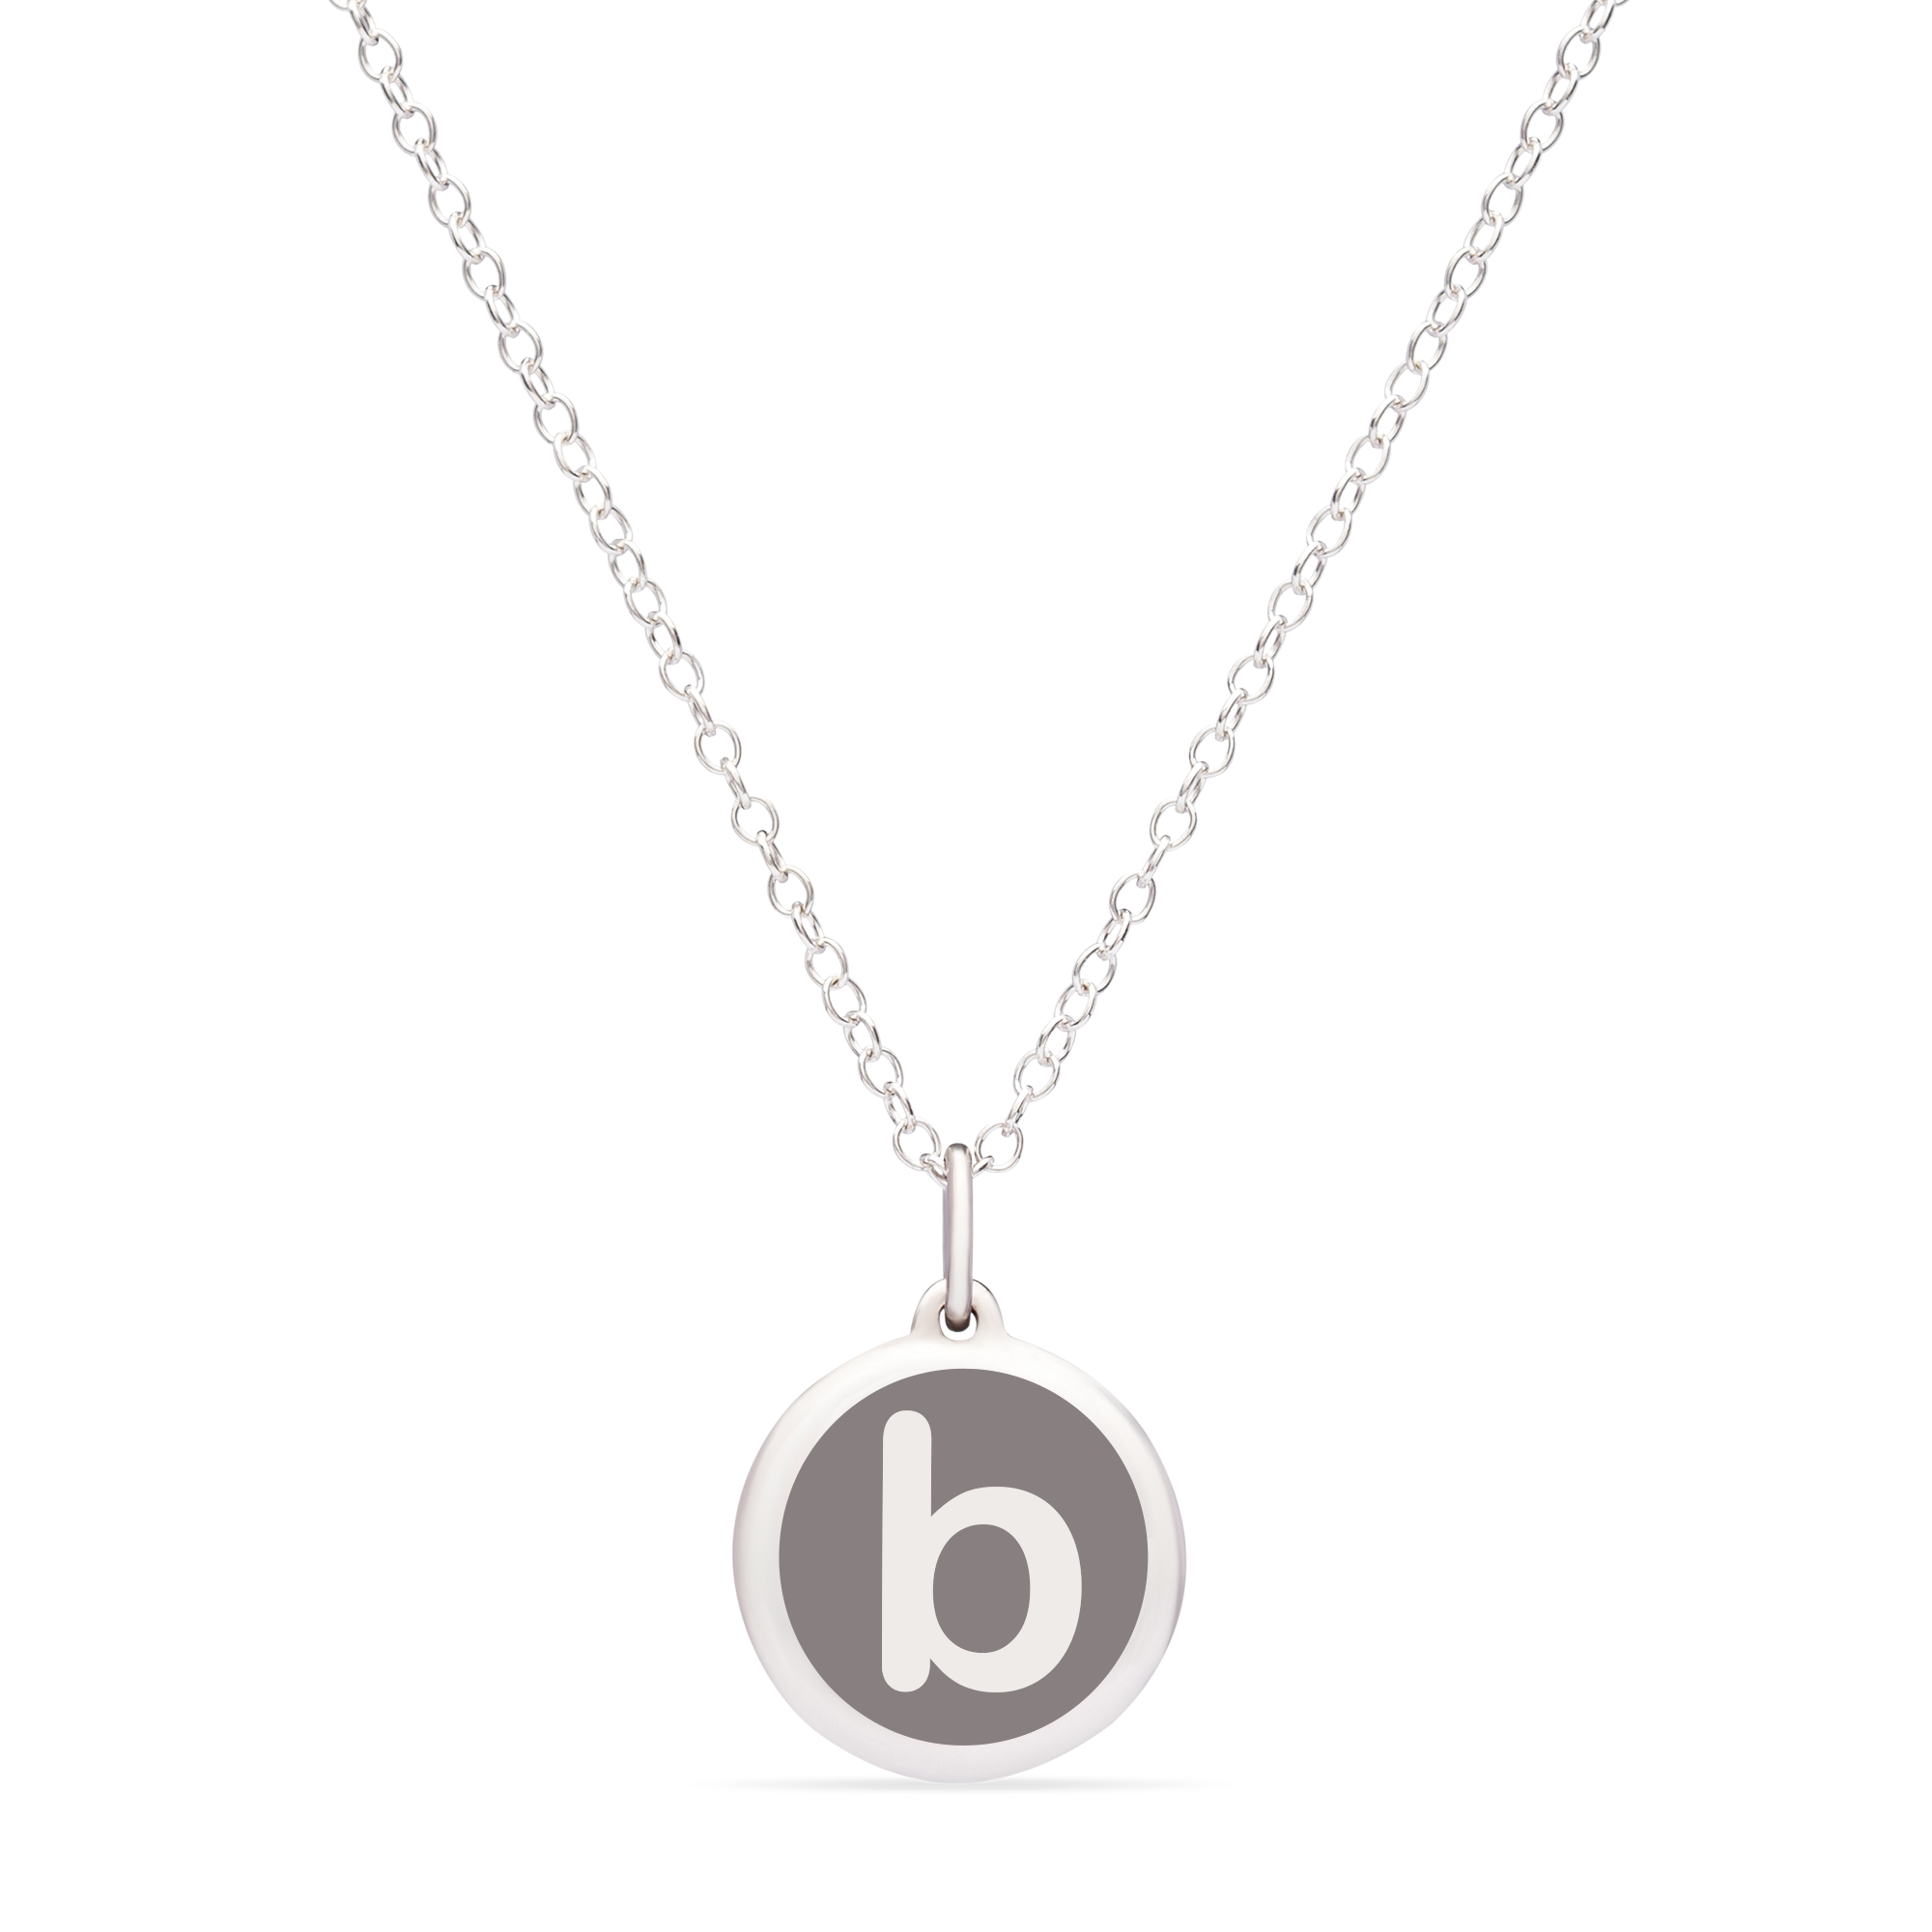 MINI INITIAL 'b' CHARM sterling silver with rhodium plate